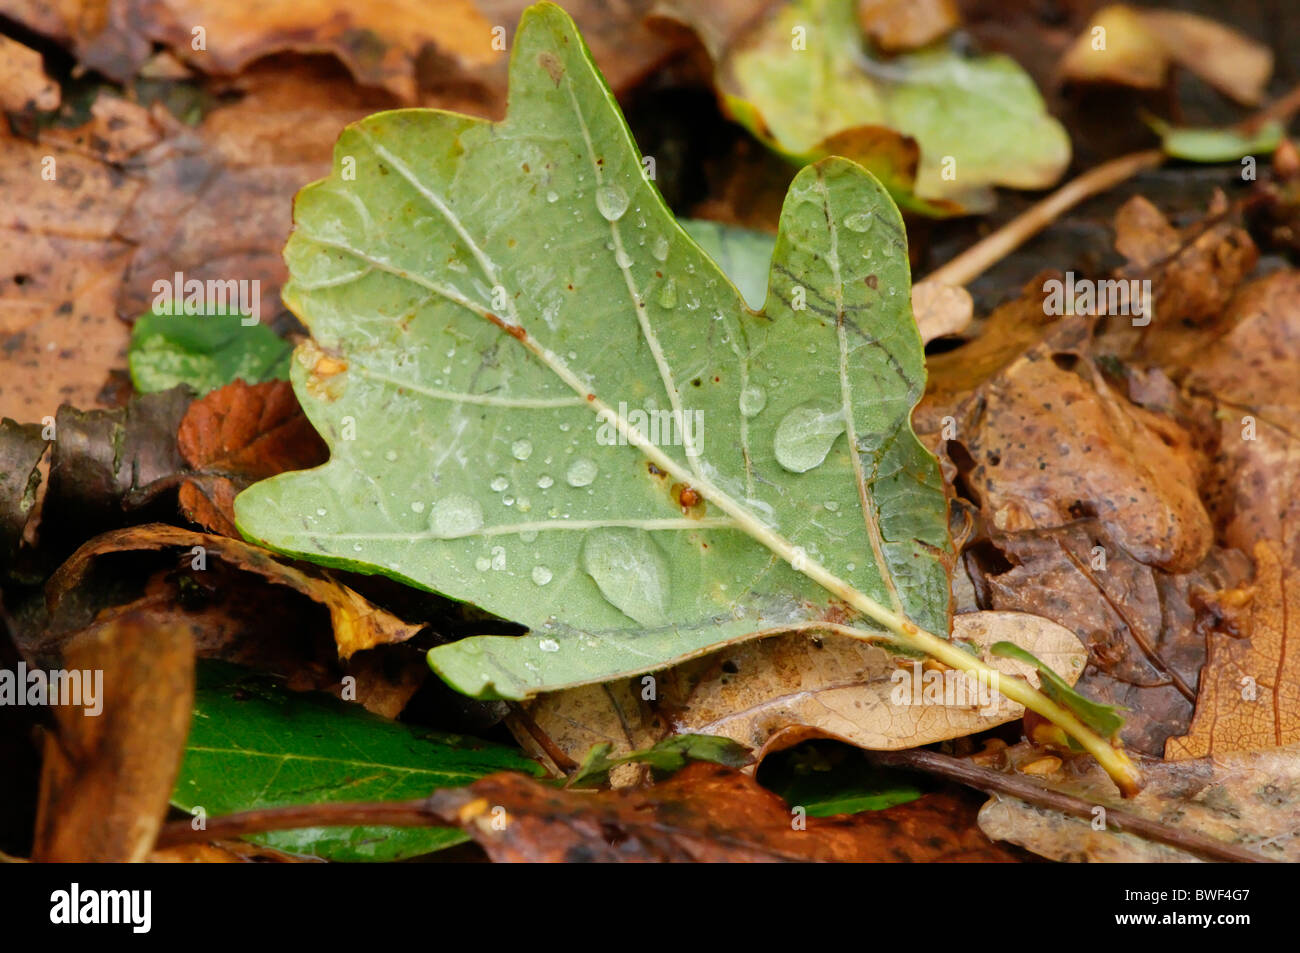 An oak leaf with water droplets stock photo royalty free